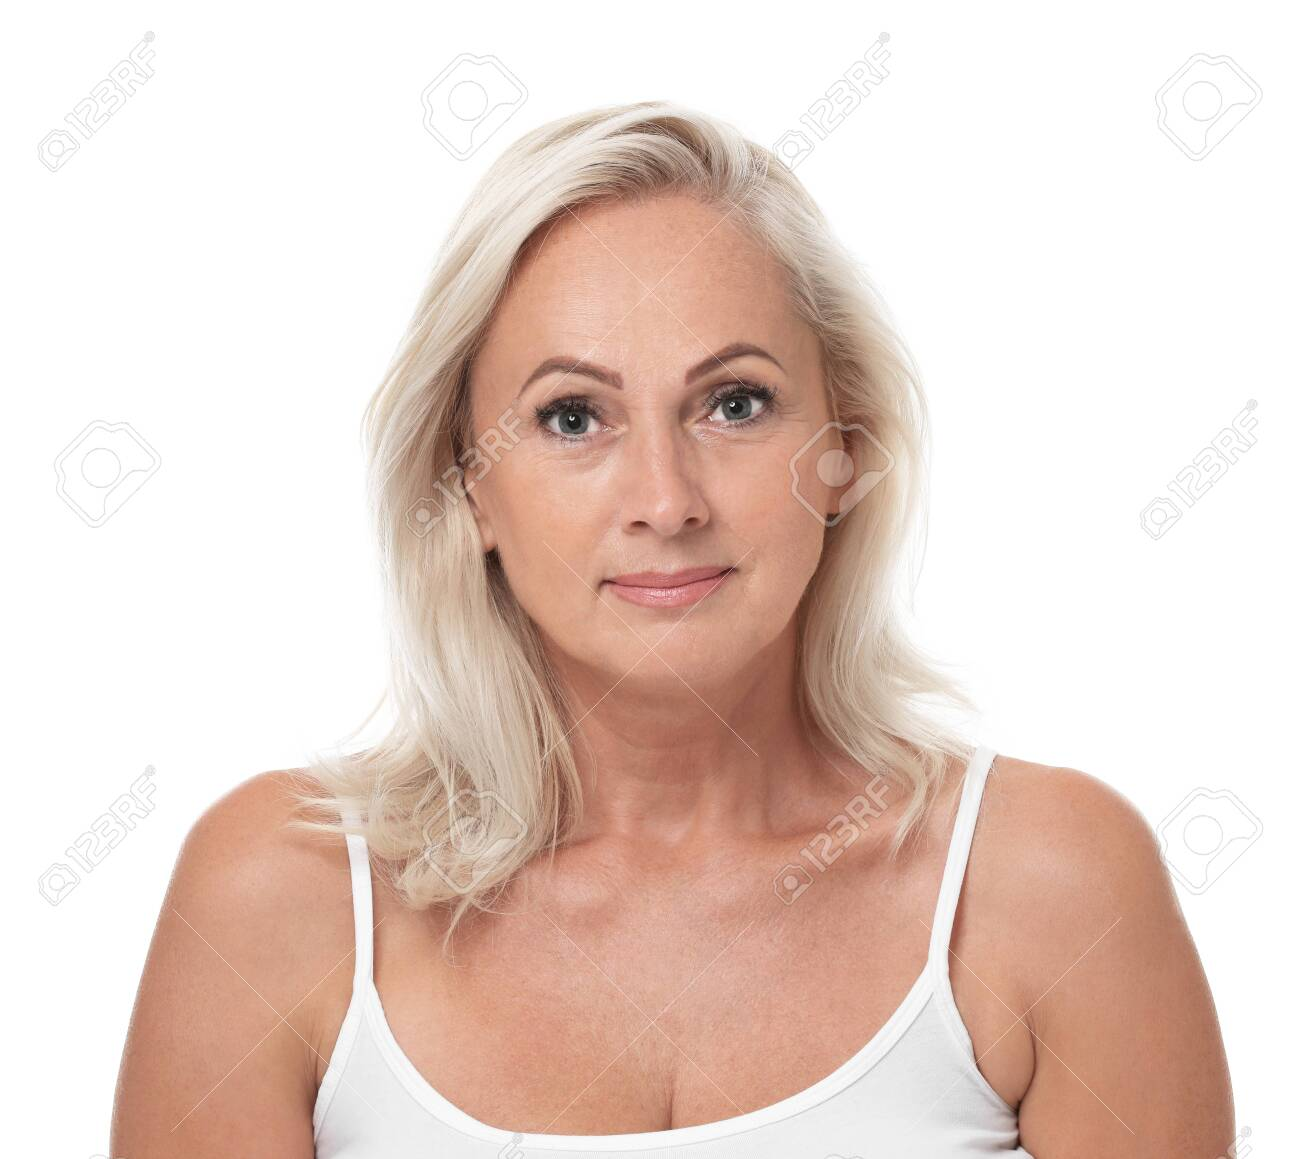 Portrait of beautiful mature woman with perfect skin on white background - 129470376